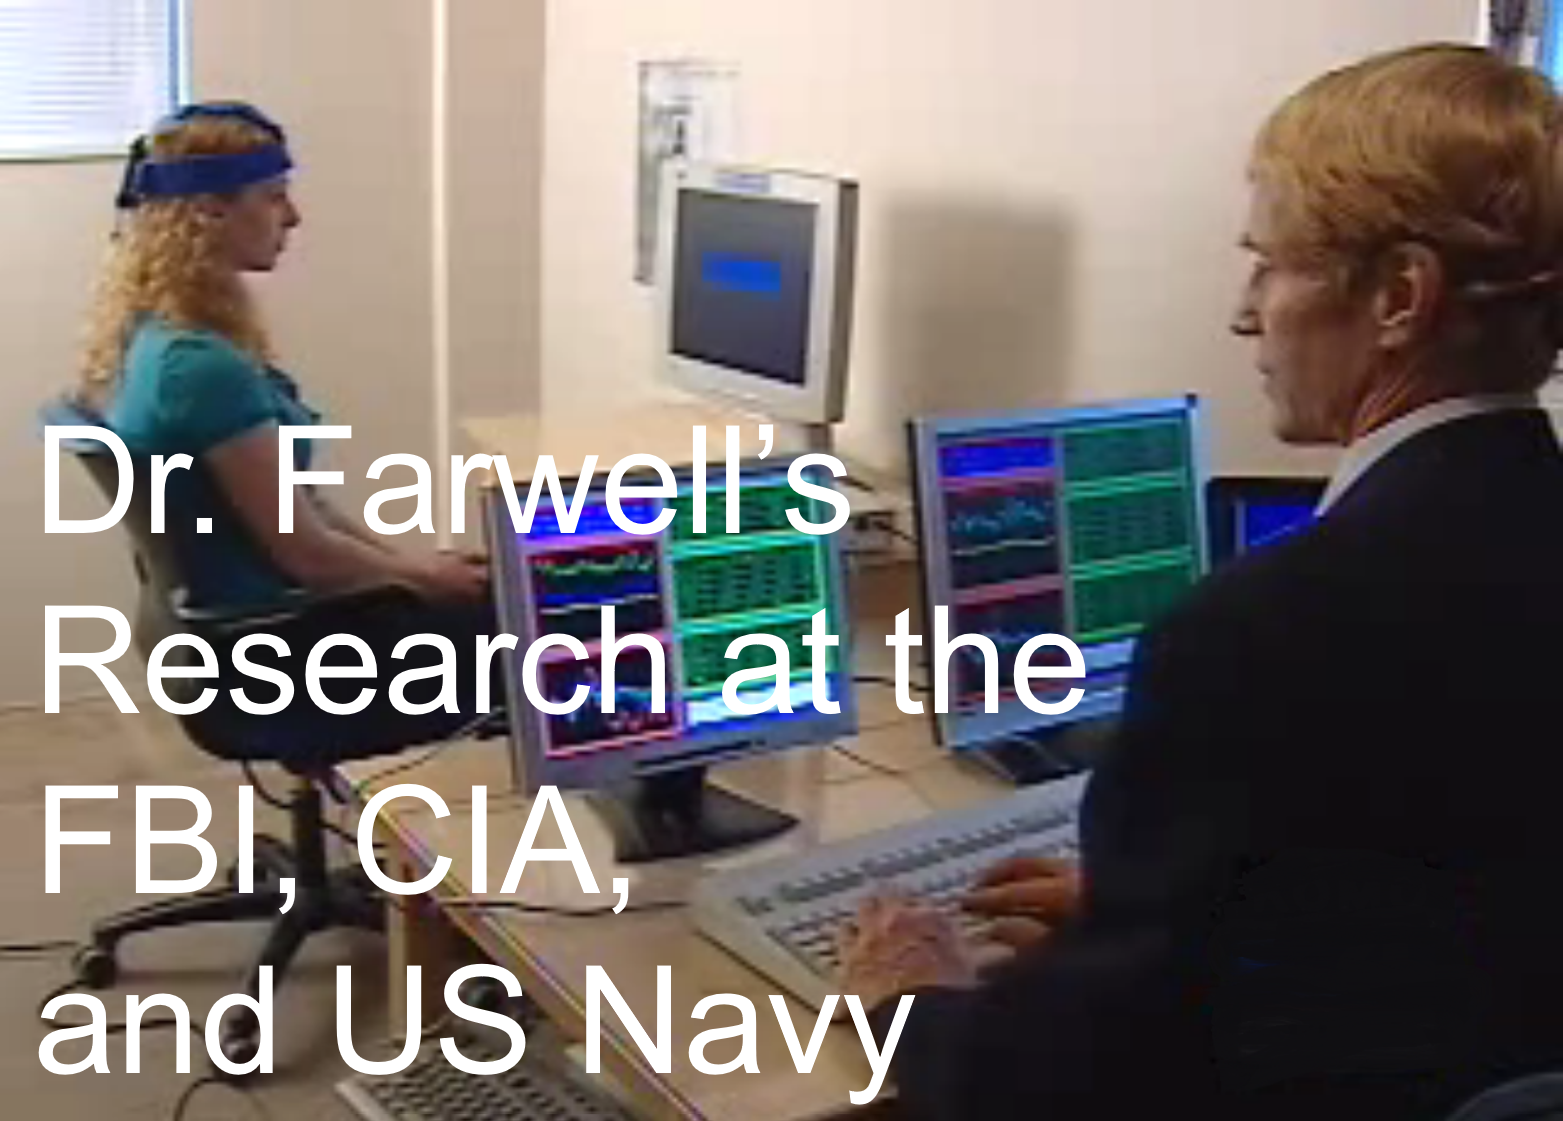 Dr. Fawell's Research FBI CIA Navy Pic and